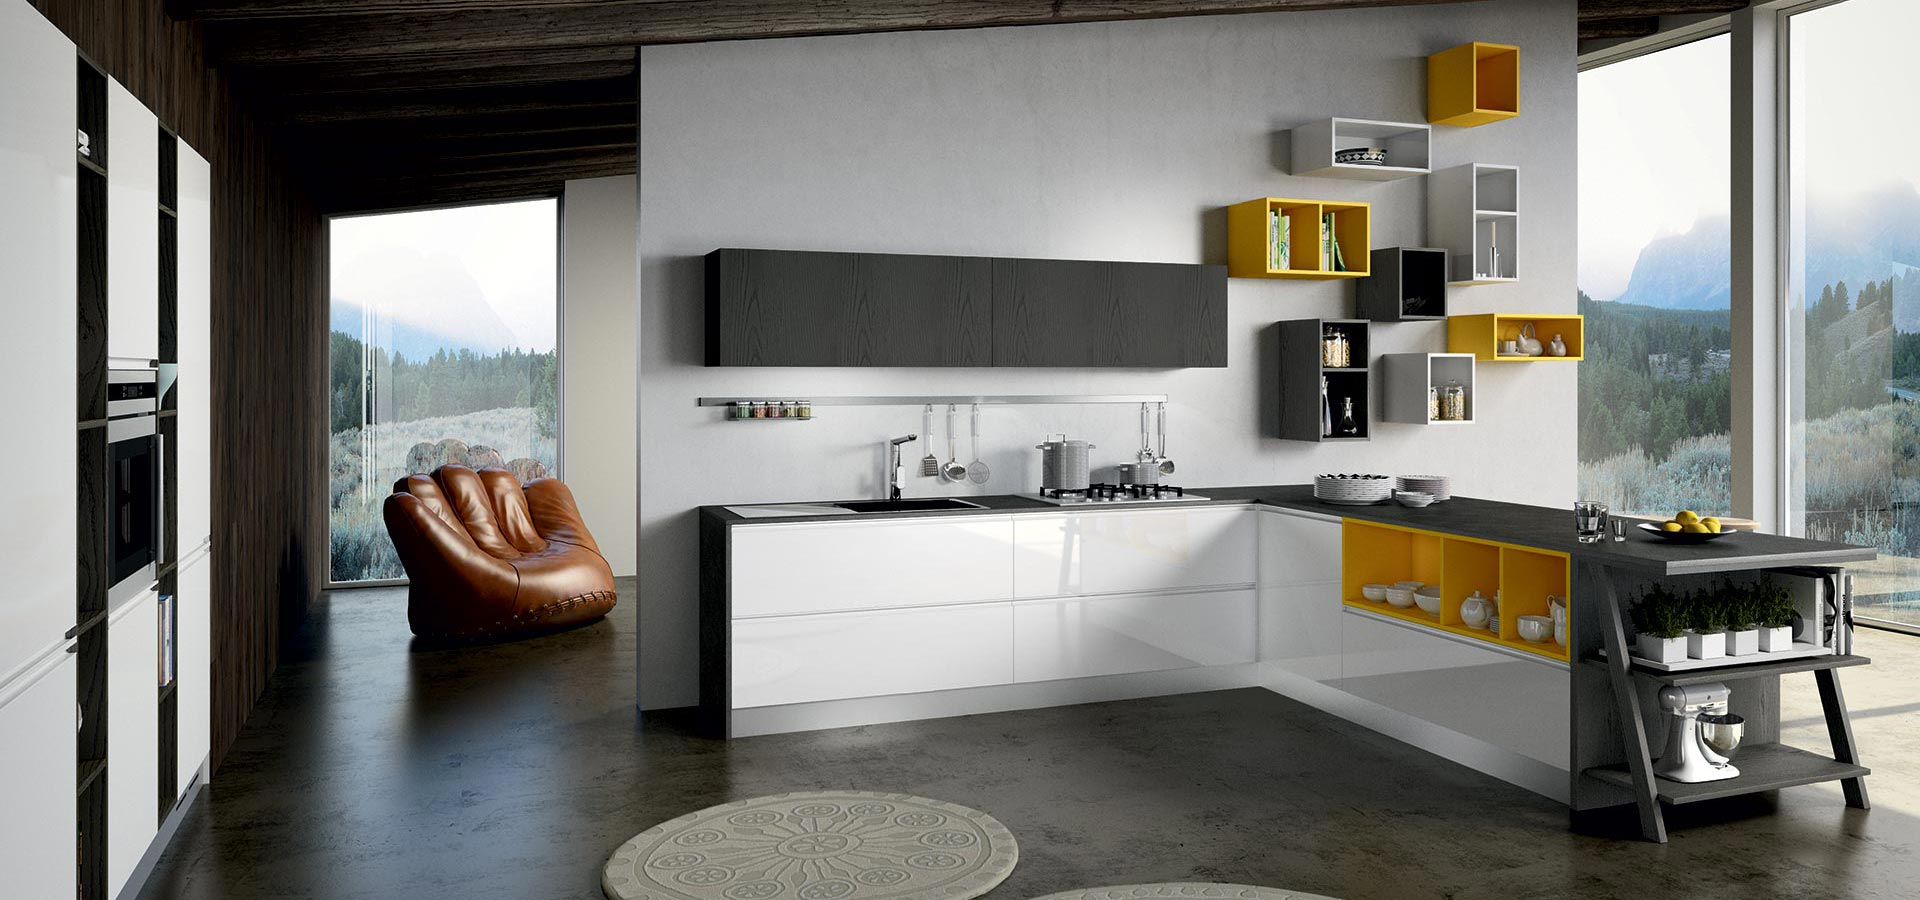 used in the right proportions, vibrant yellow can achieve stunning visual results